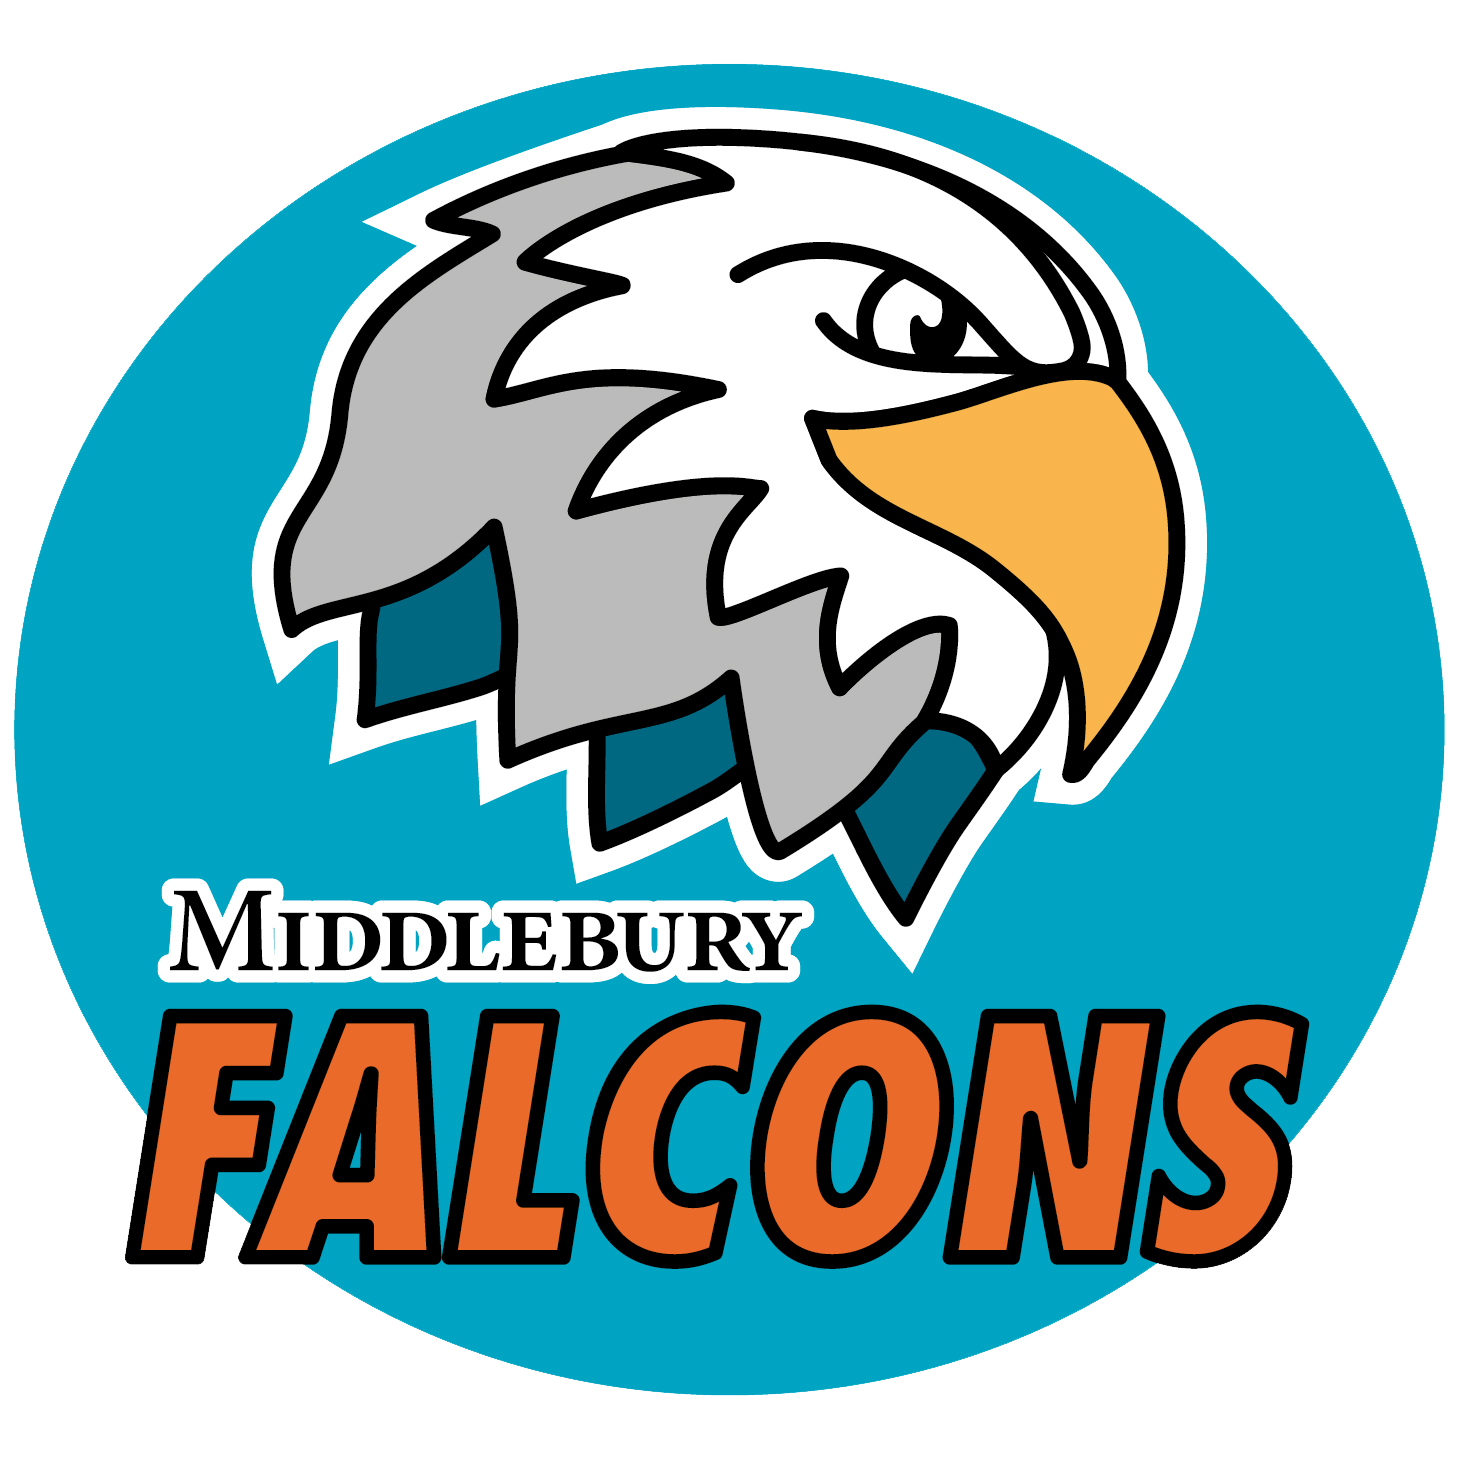 Middlebury Board Meeting Notice: June 10